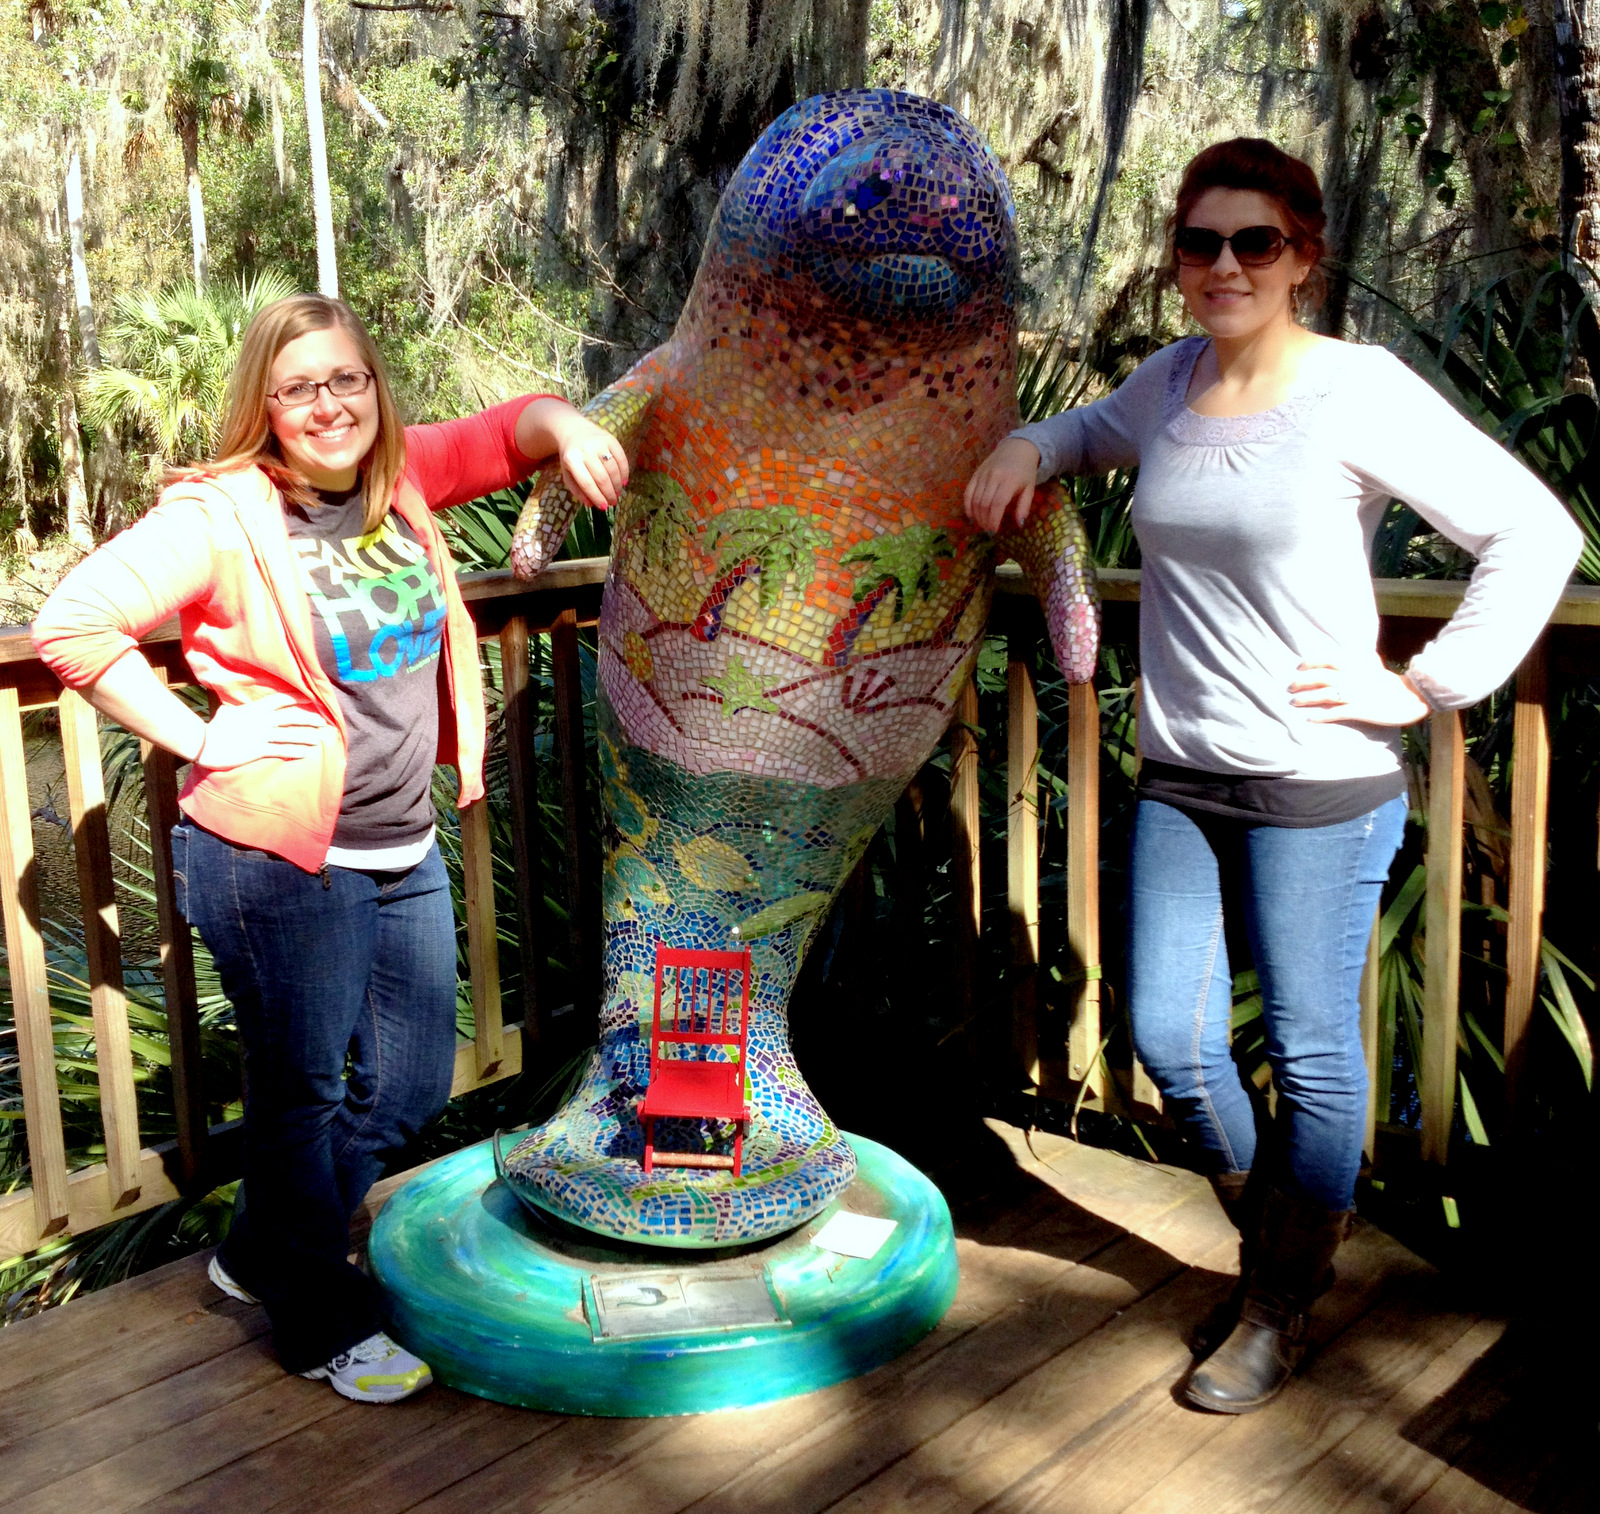 Julie and Michayla — Blue Spring State Park, Florida (1/19/13)